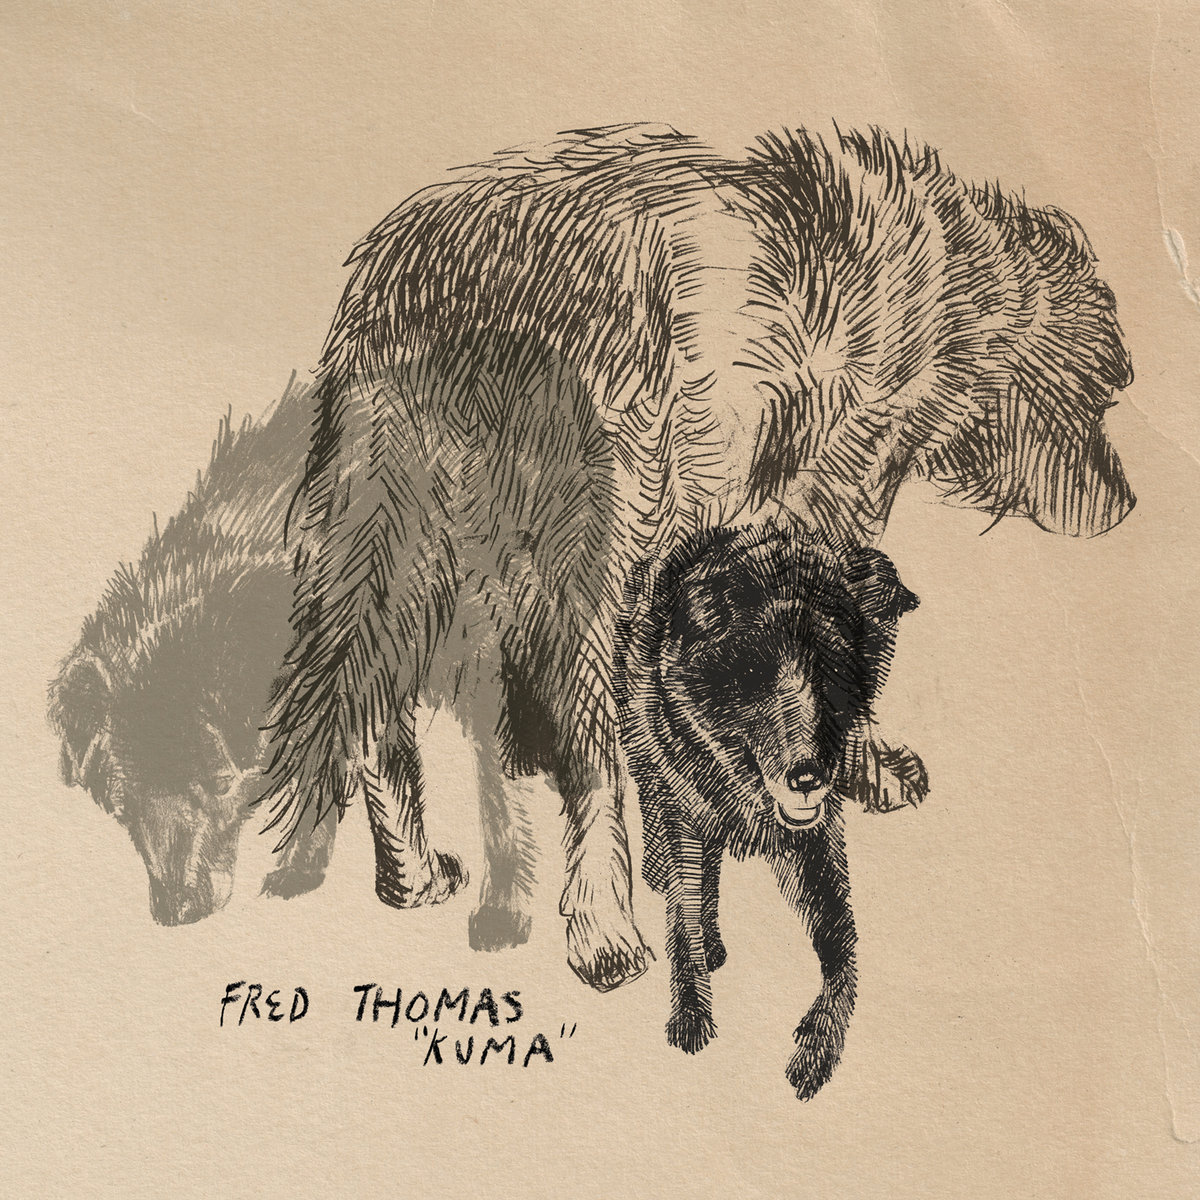 Fred Thomas - Kuma